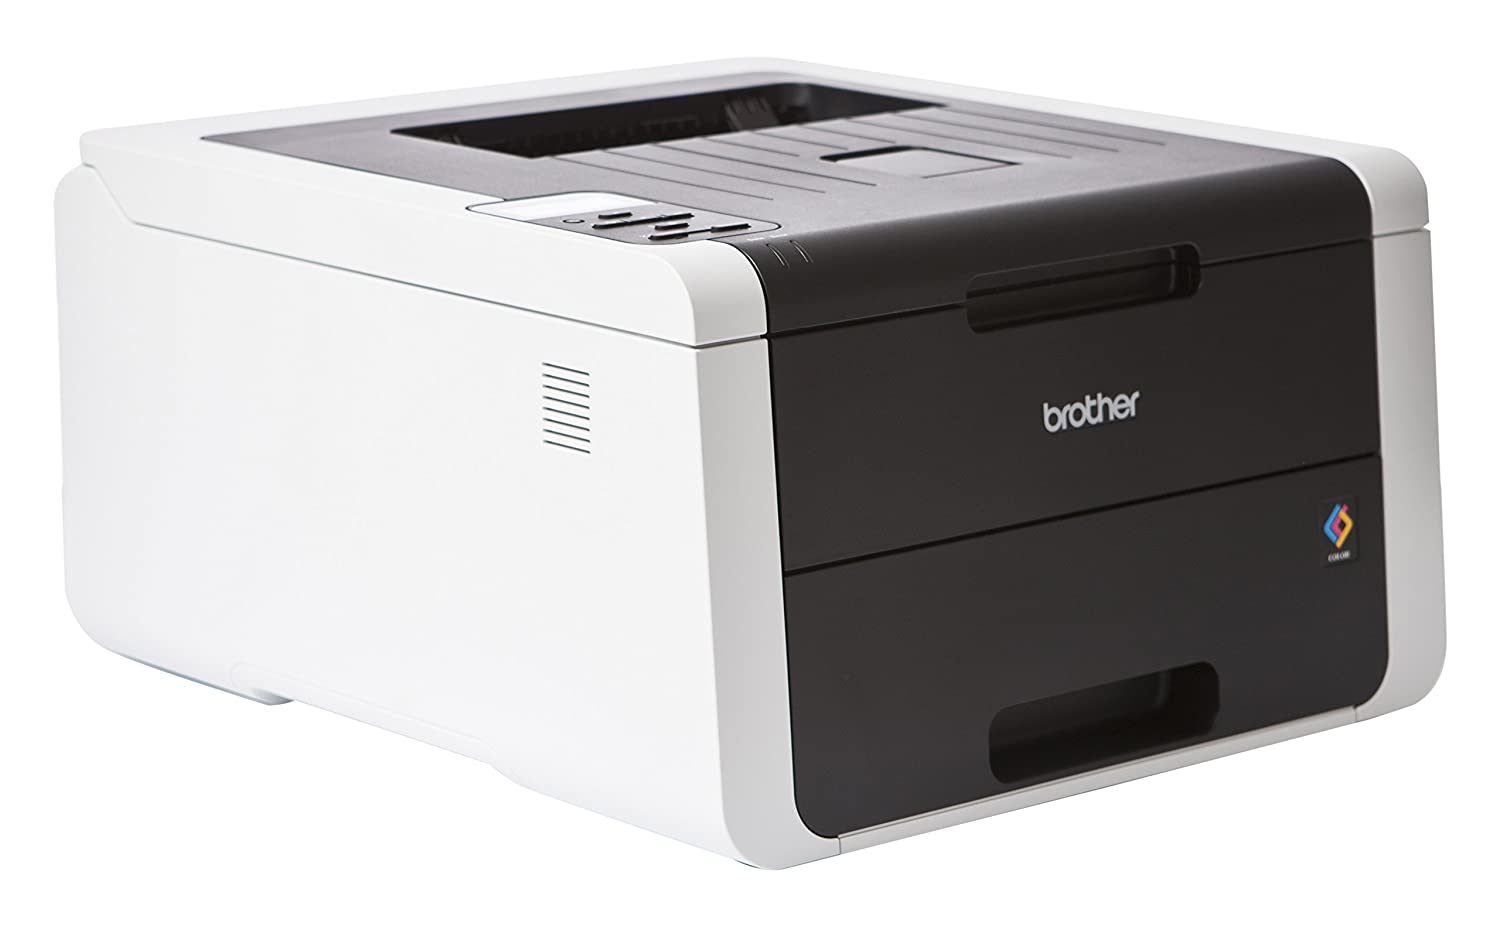 brother hl3150cdw a4 colour laser wireless printer amazon co uk